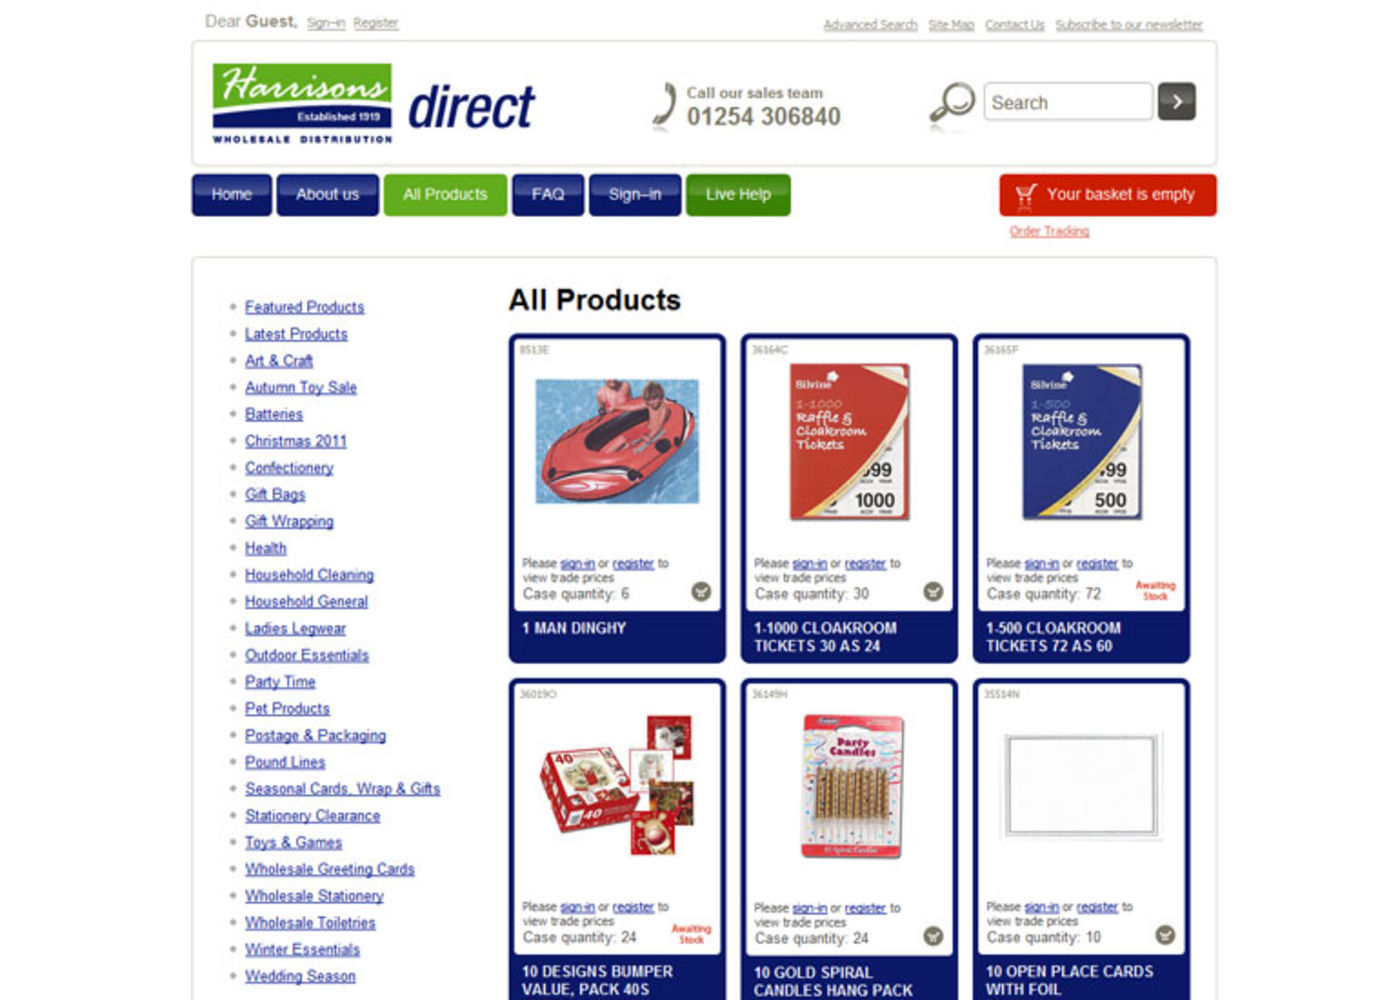 Harrisons Direct 2008 Products